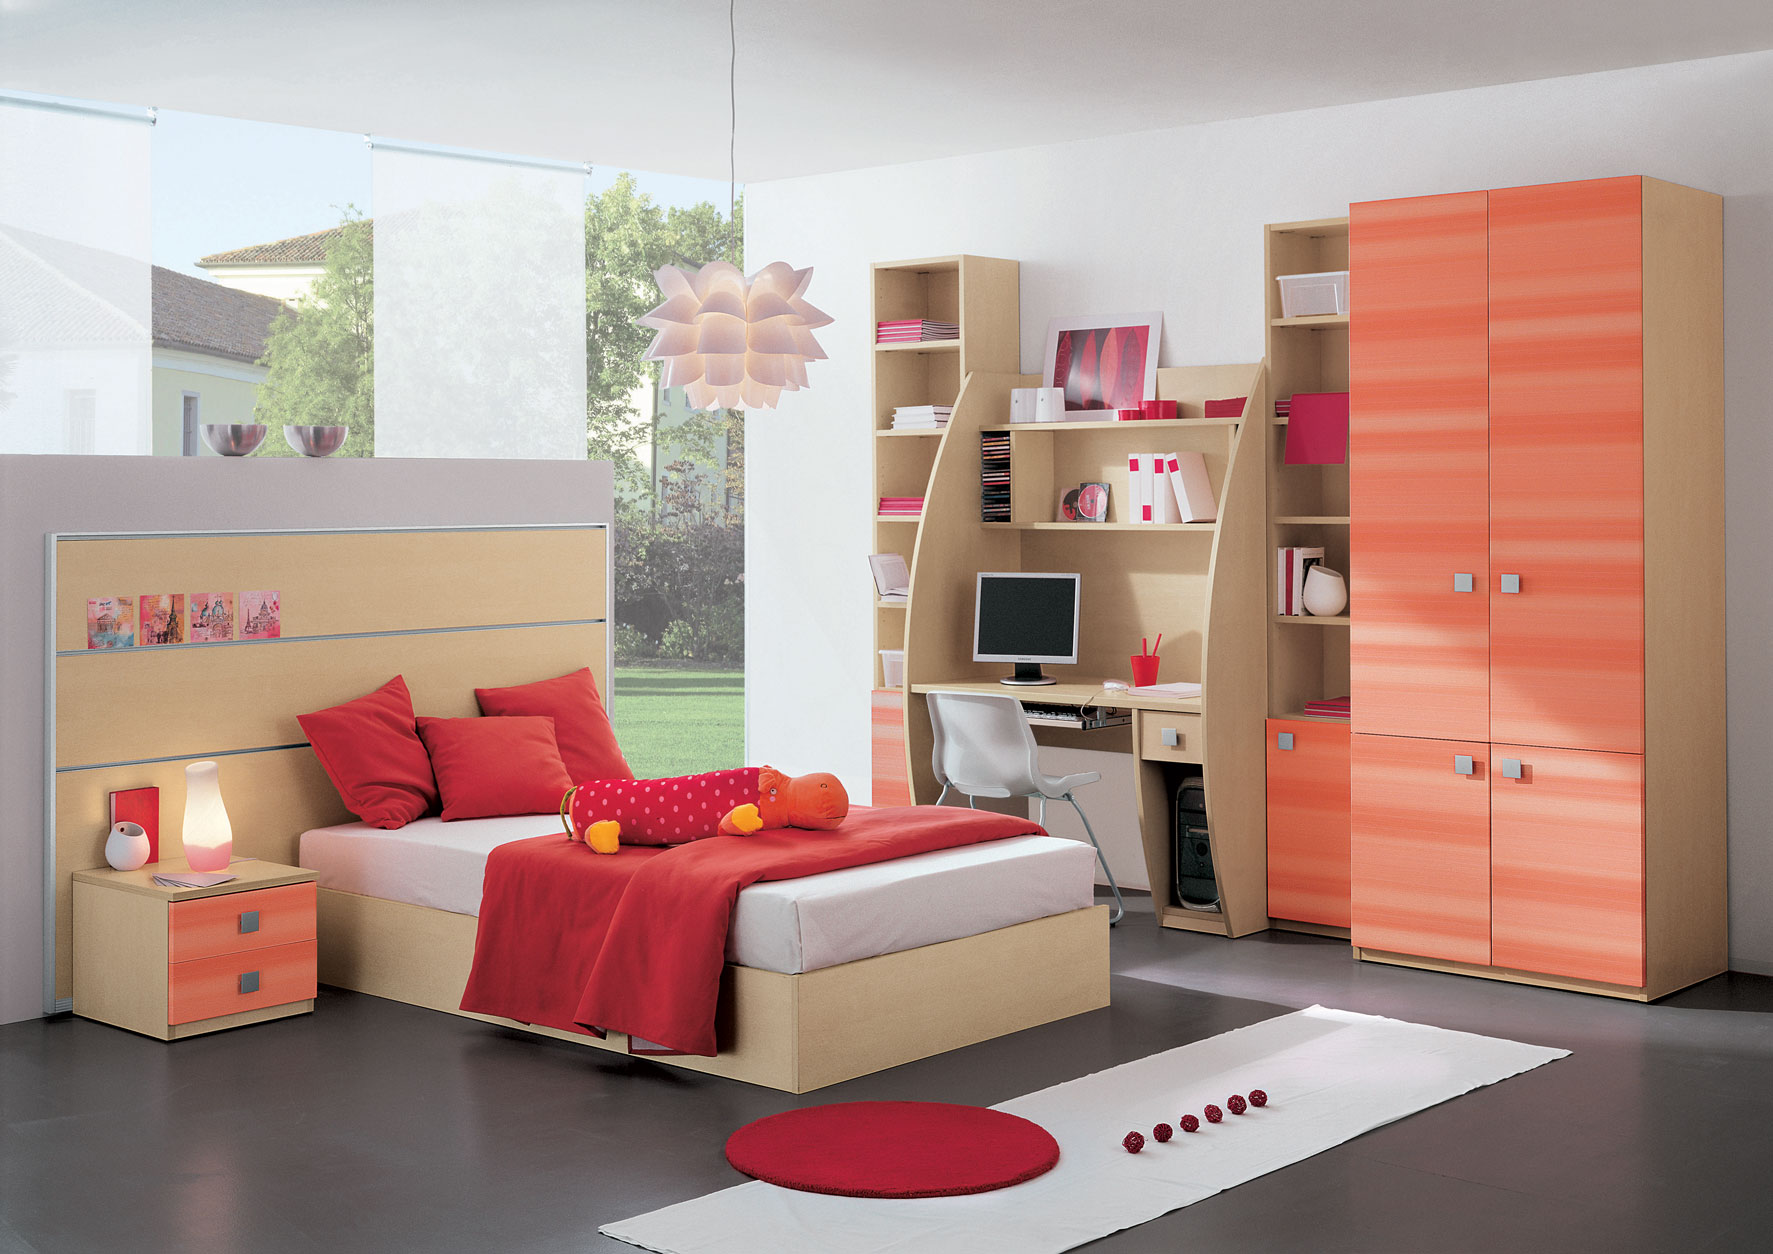 Interior Exterior Plan | Colorful bedroom idea for the kids